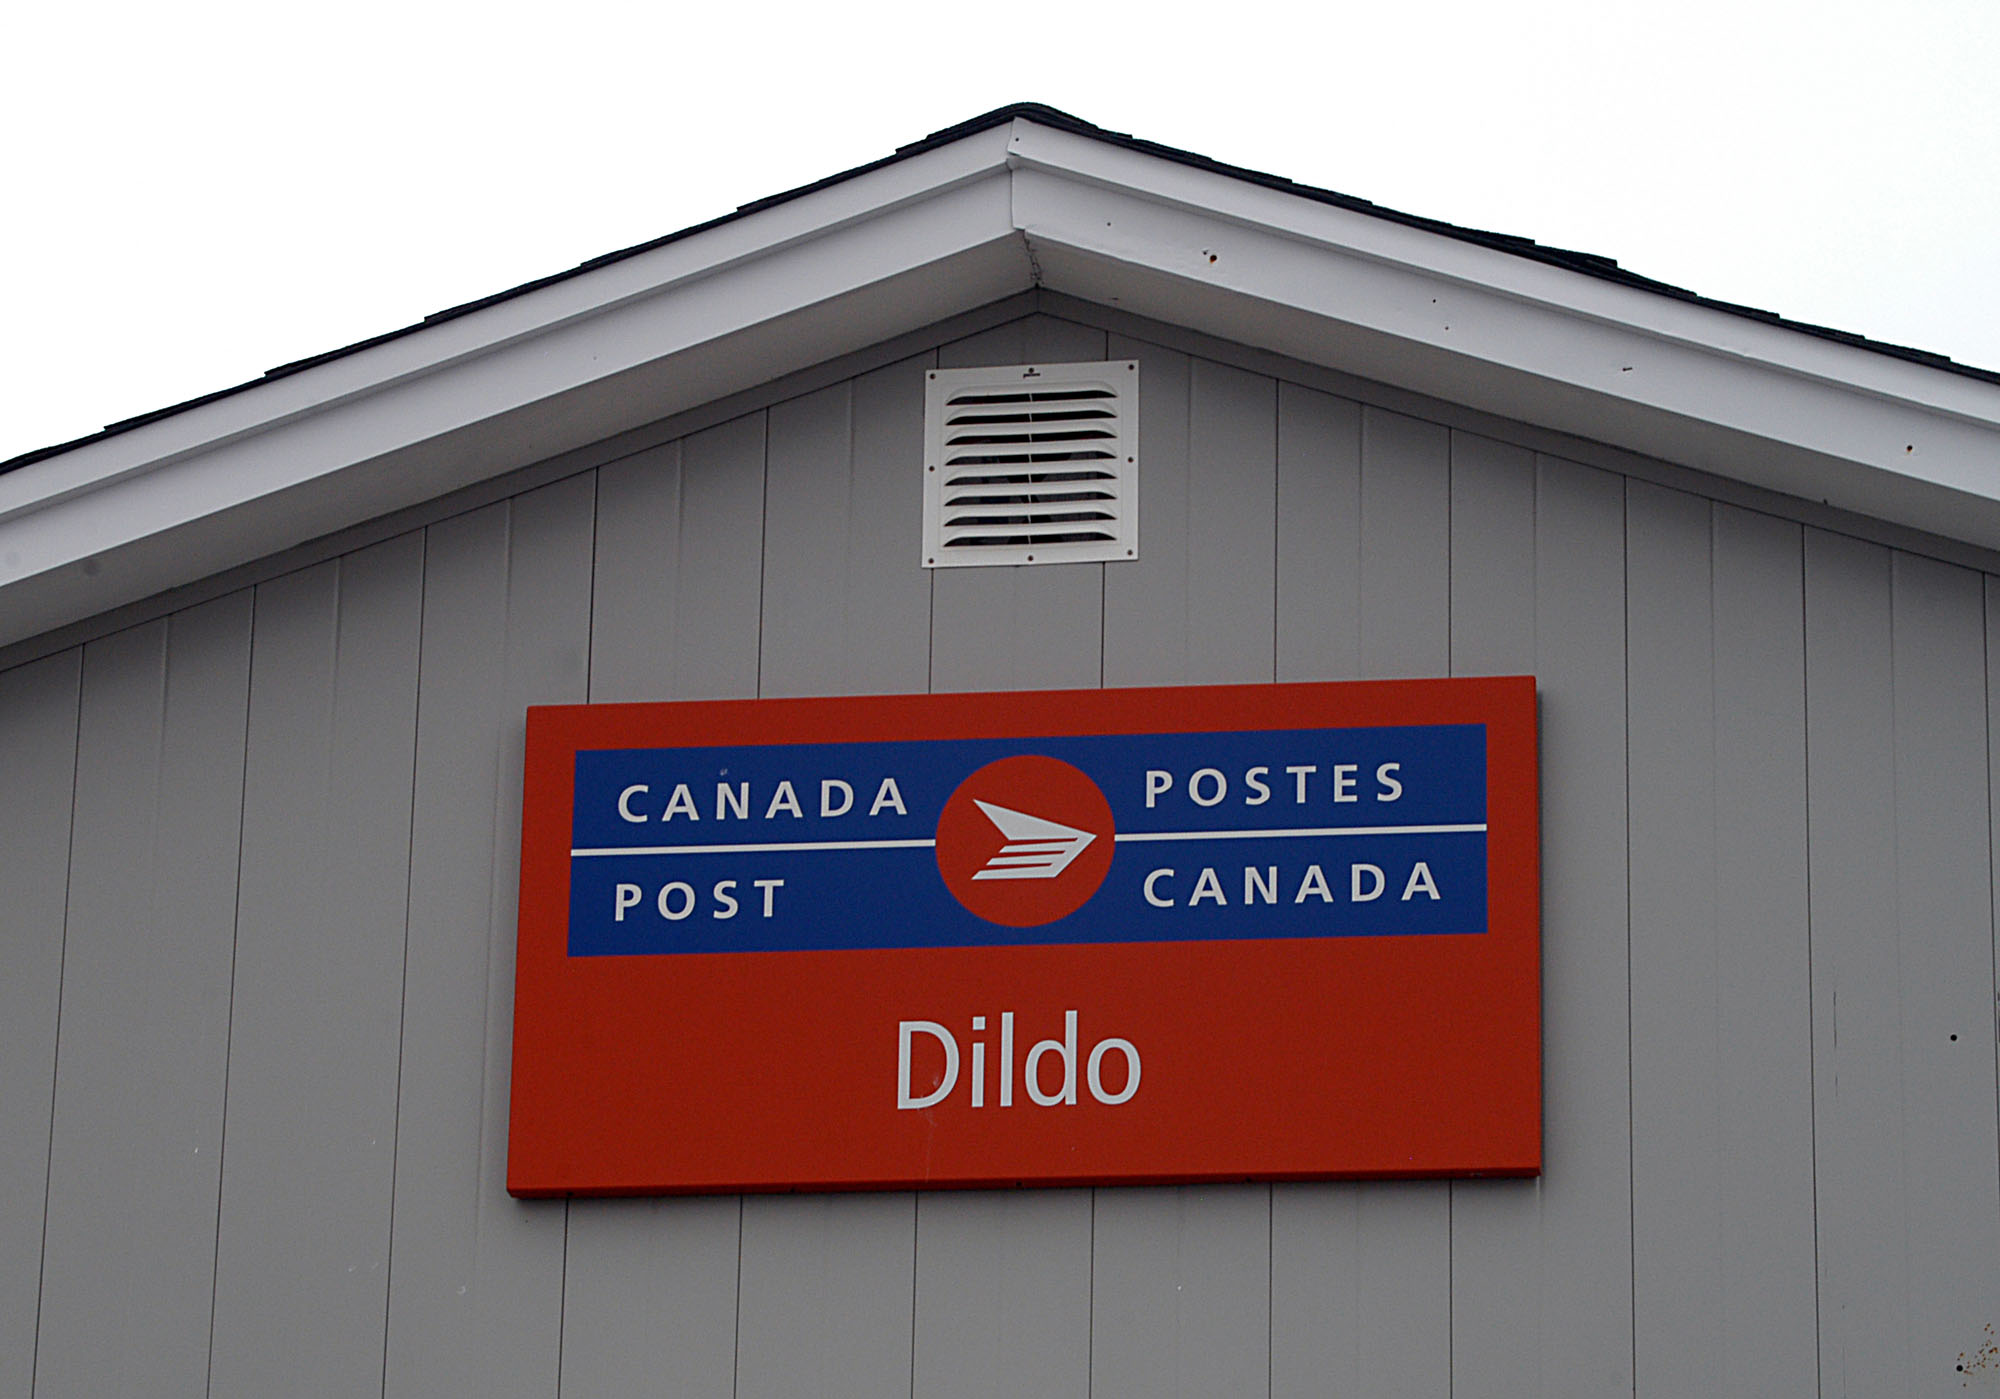 Dildo newfoundland travel info